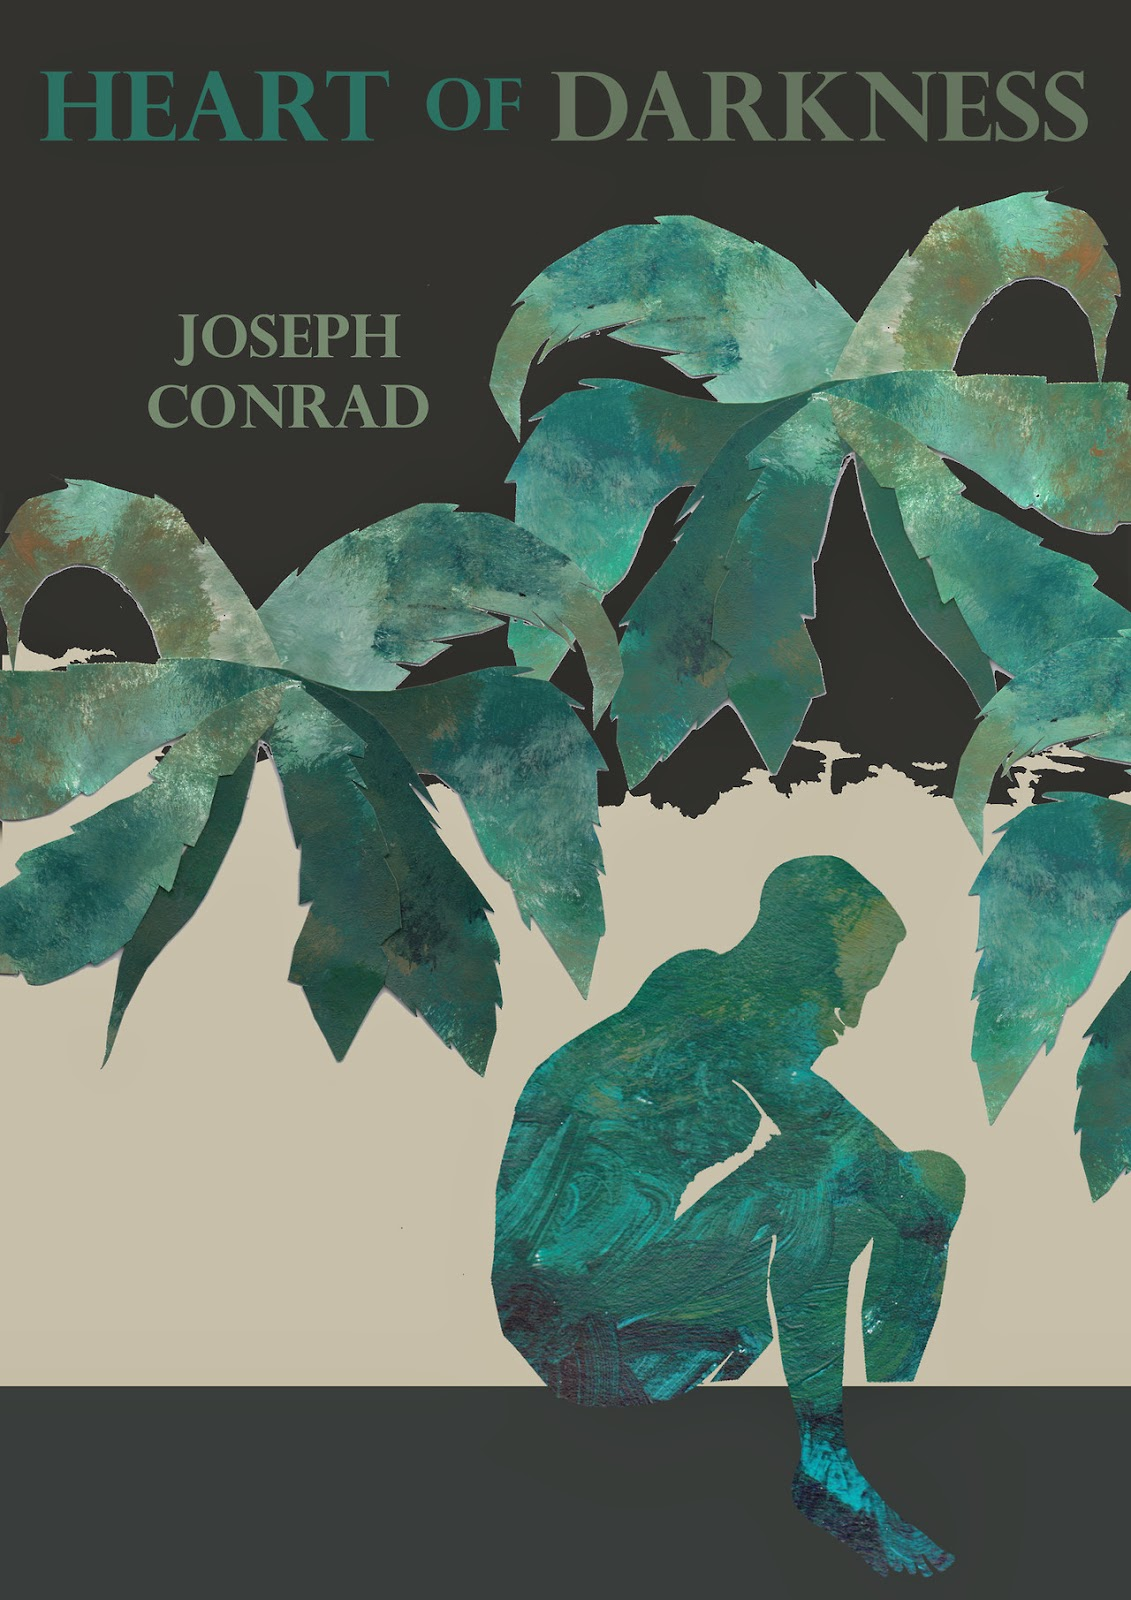 an analysis of heart of darkness by joseph conrads Novel, an elevated analysis of the sum of these great parts,  a teacher's guide to the signet classics edition of heart of darkness by joseph conrad 5.